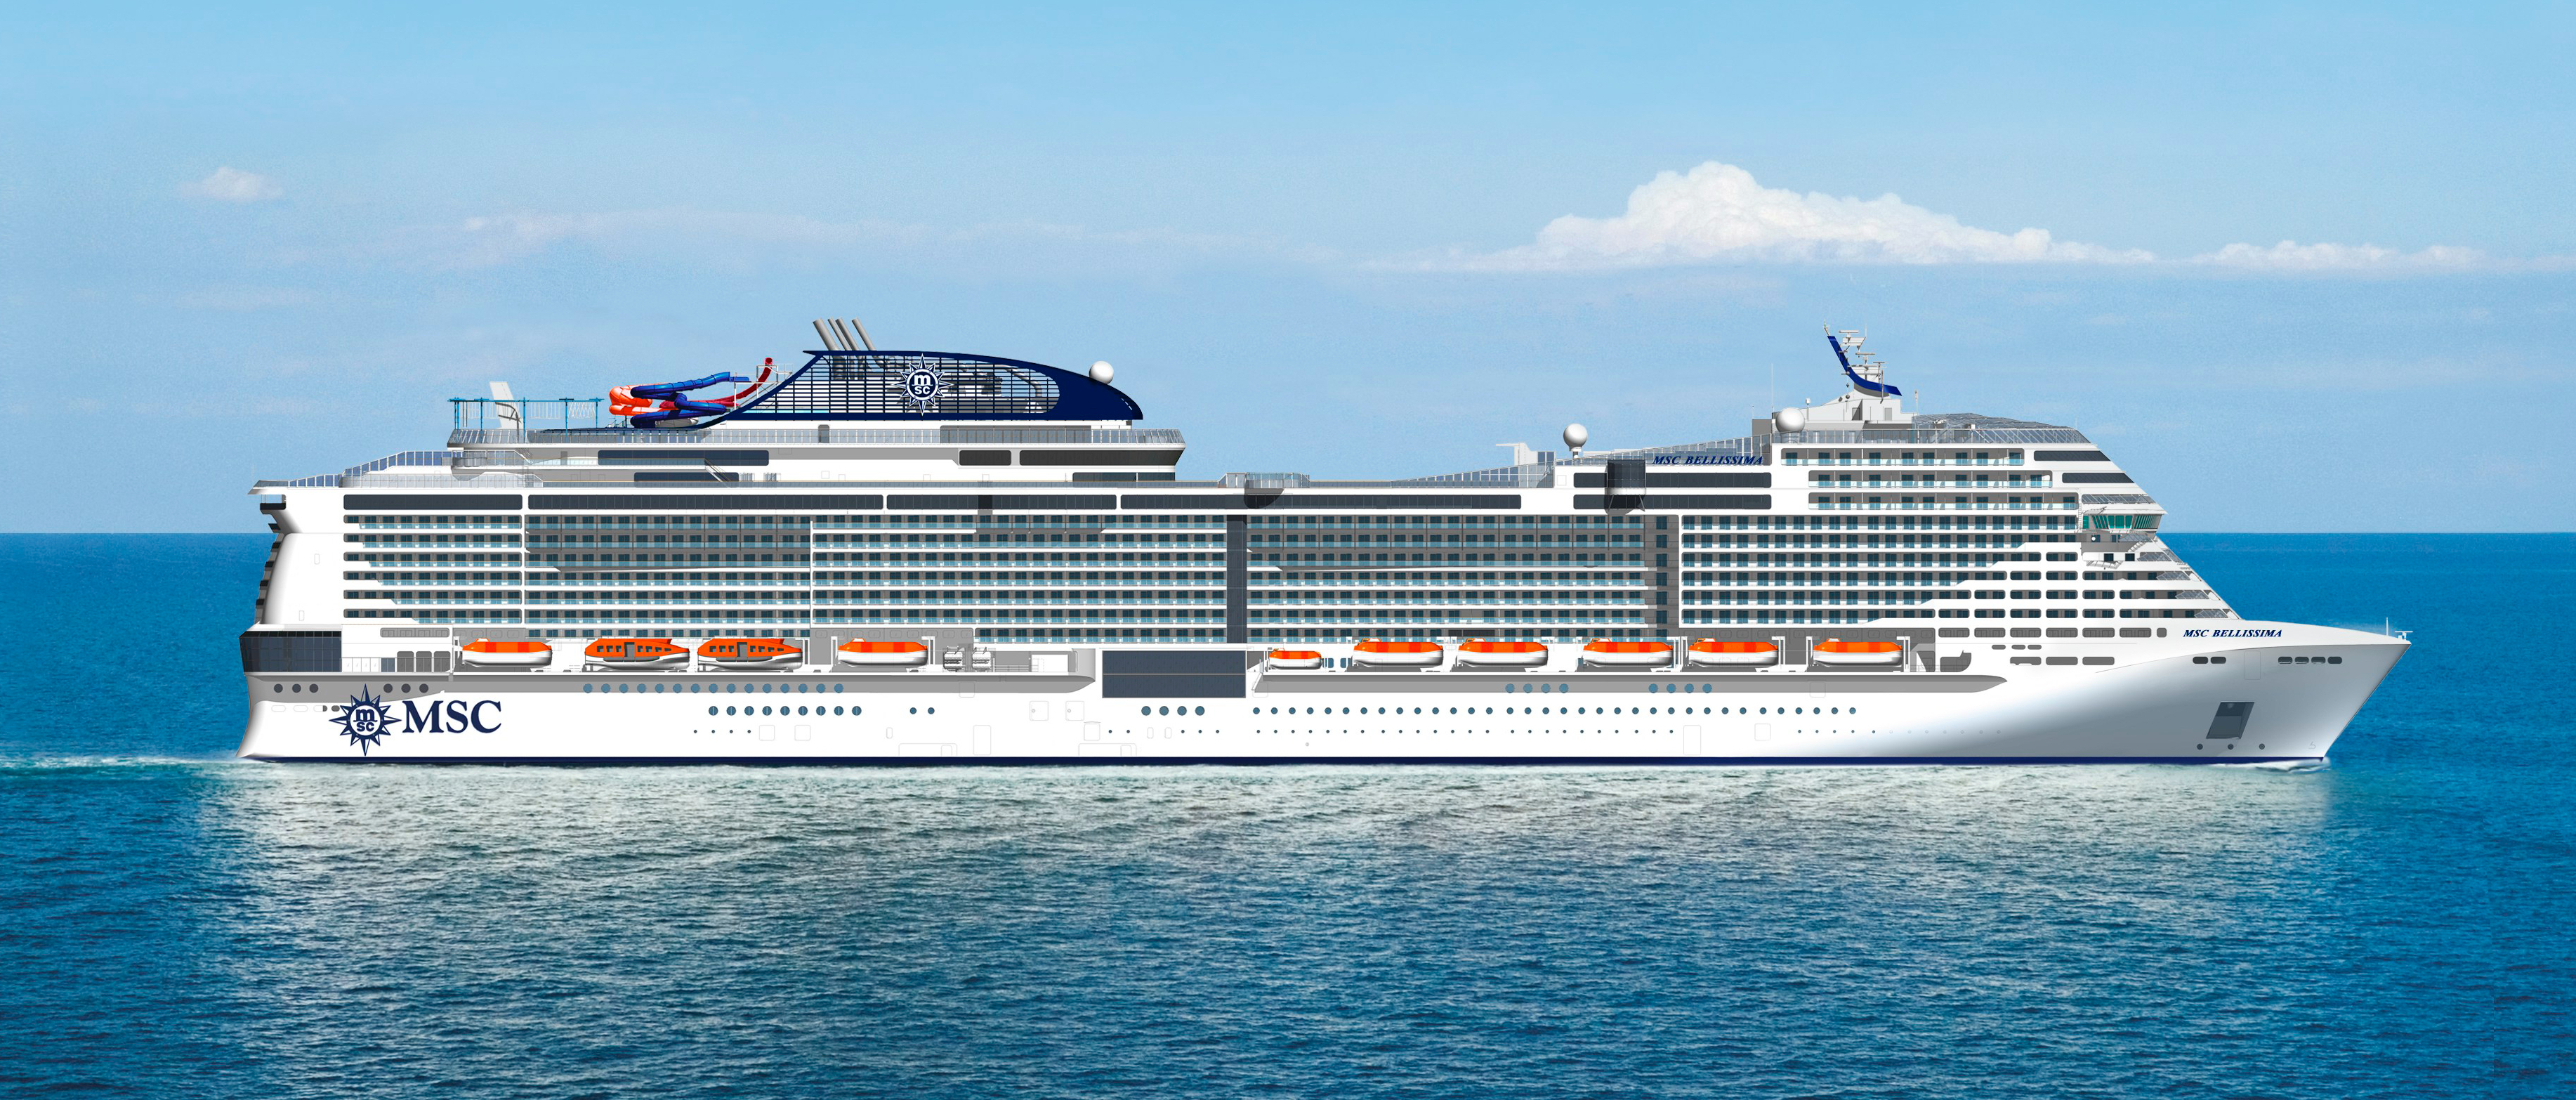 msc-bellissima-launches-march-2019_3.jpeg